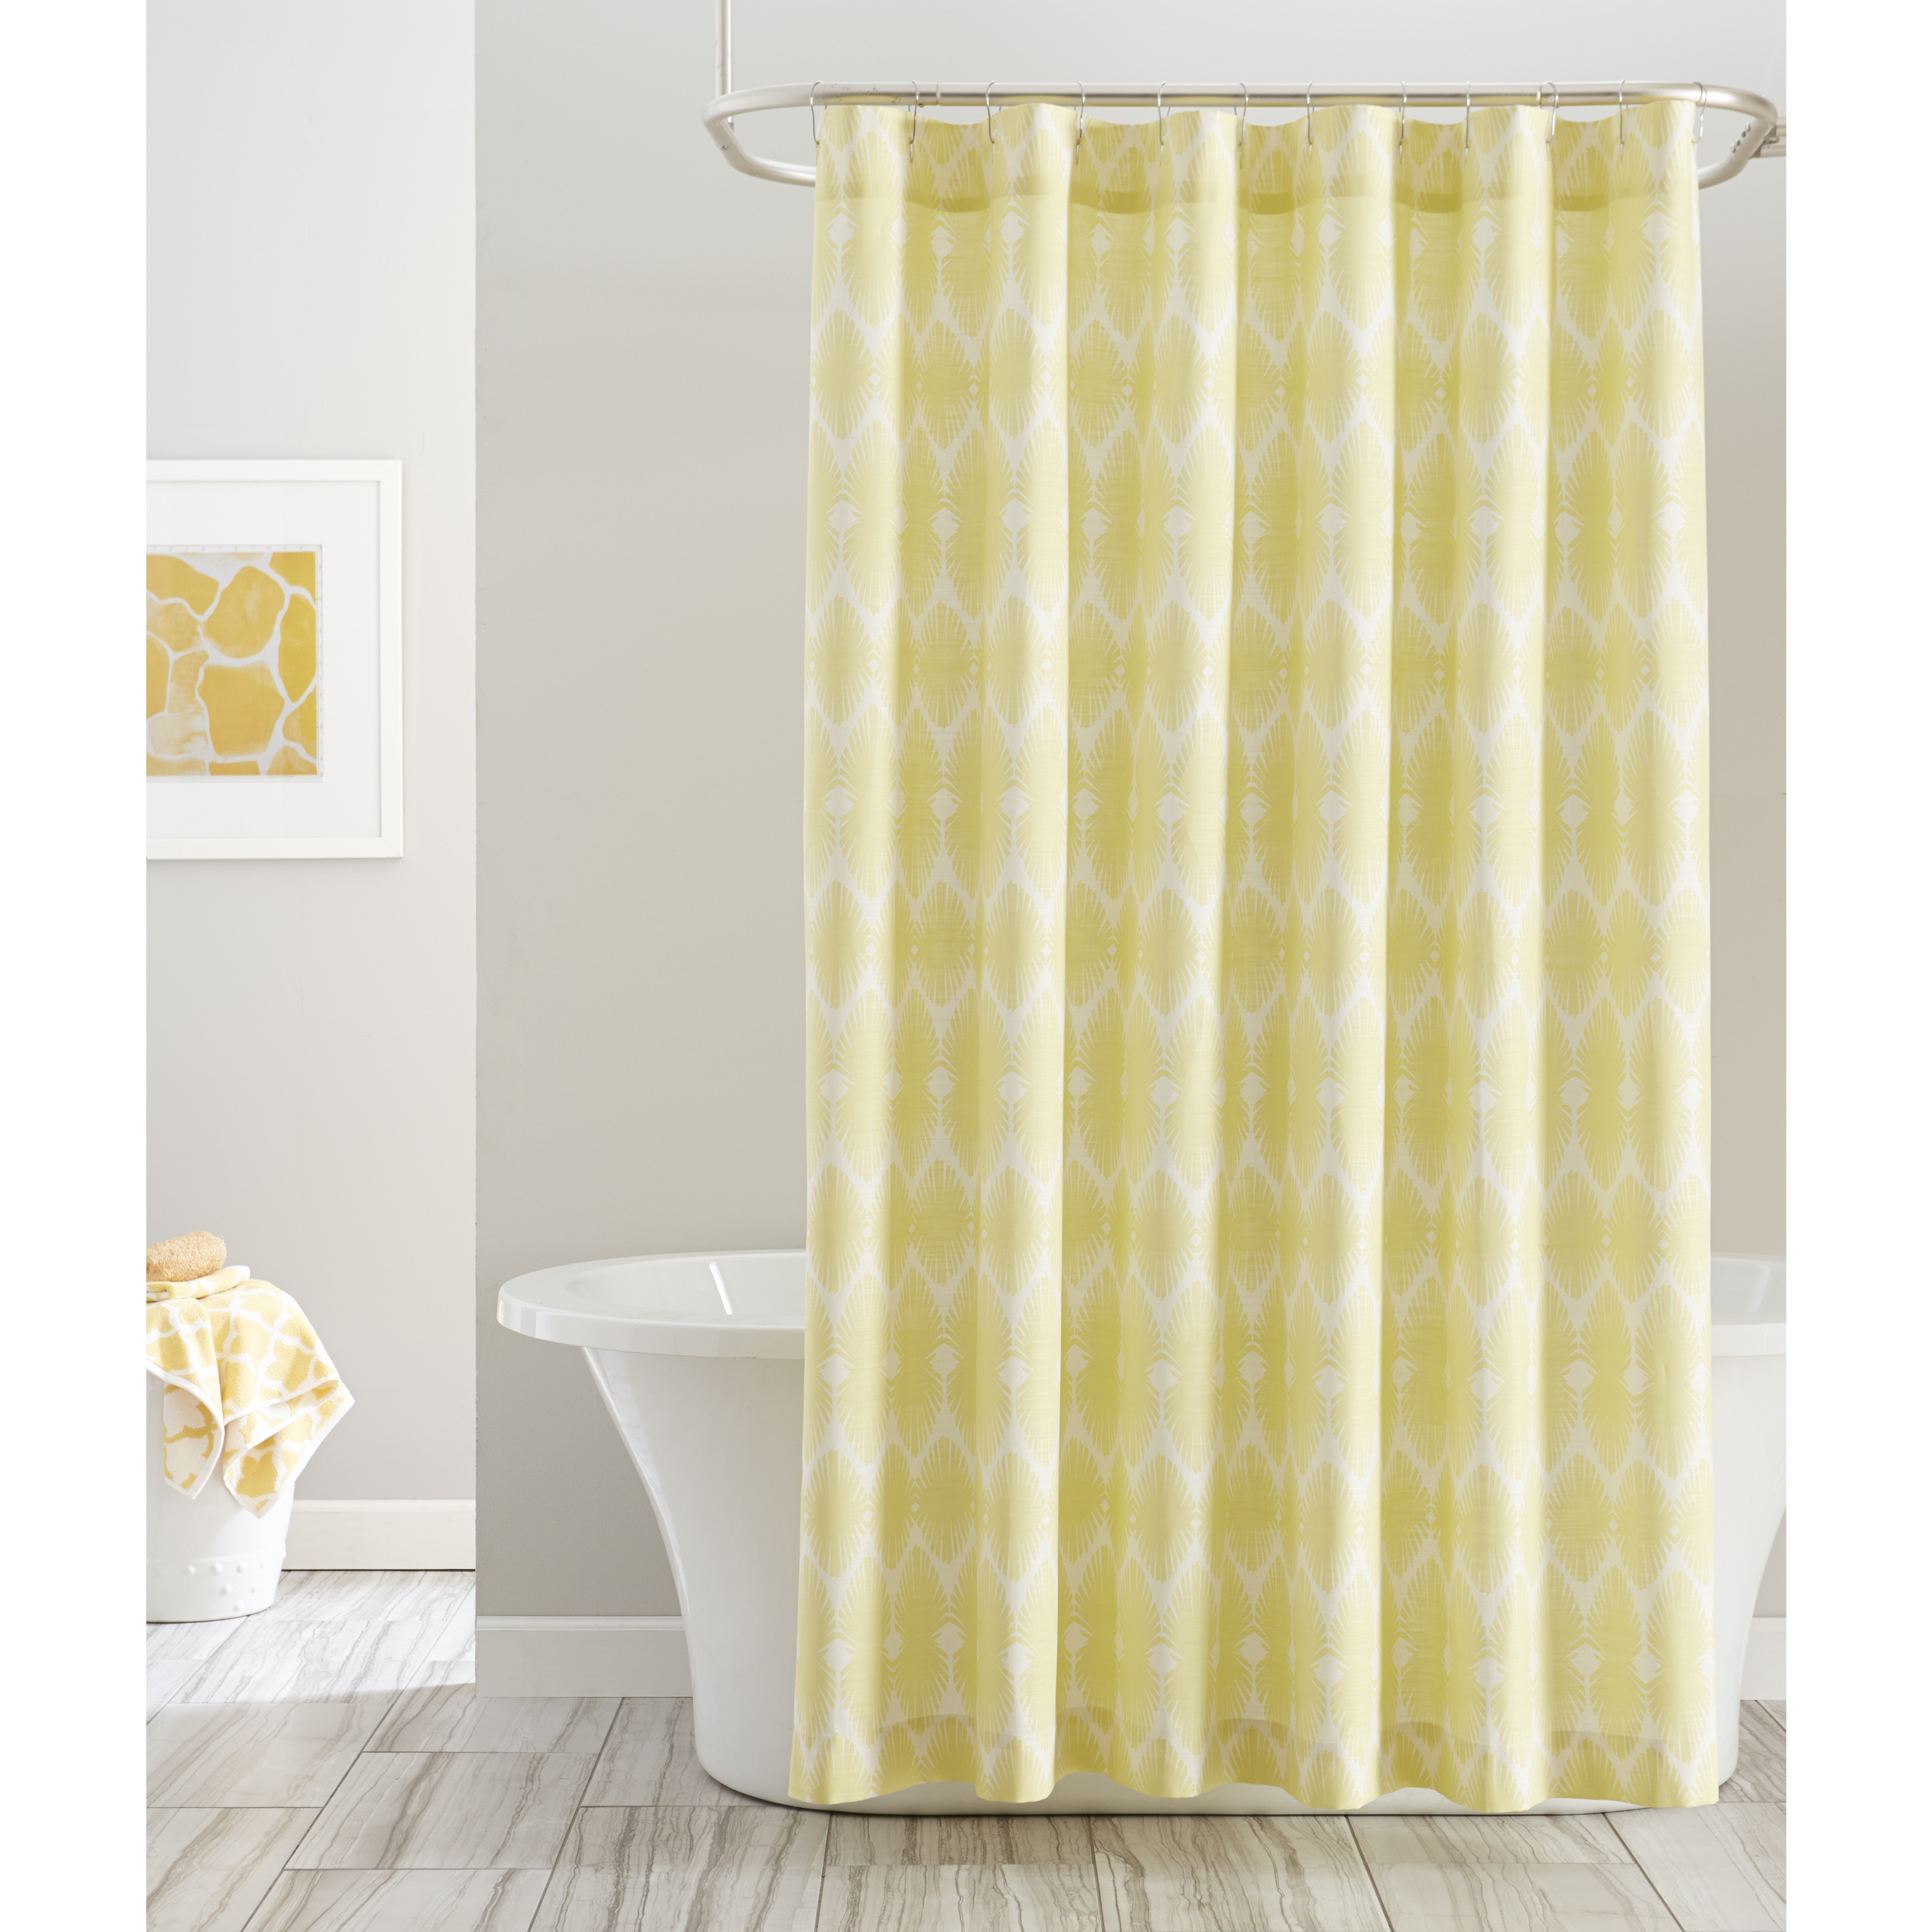 Pointhaven Bright Print Shower Curtains 72 x 72 (72 x 72,...